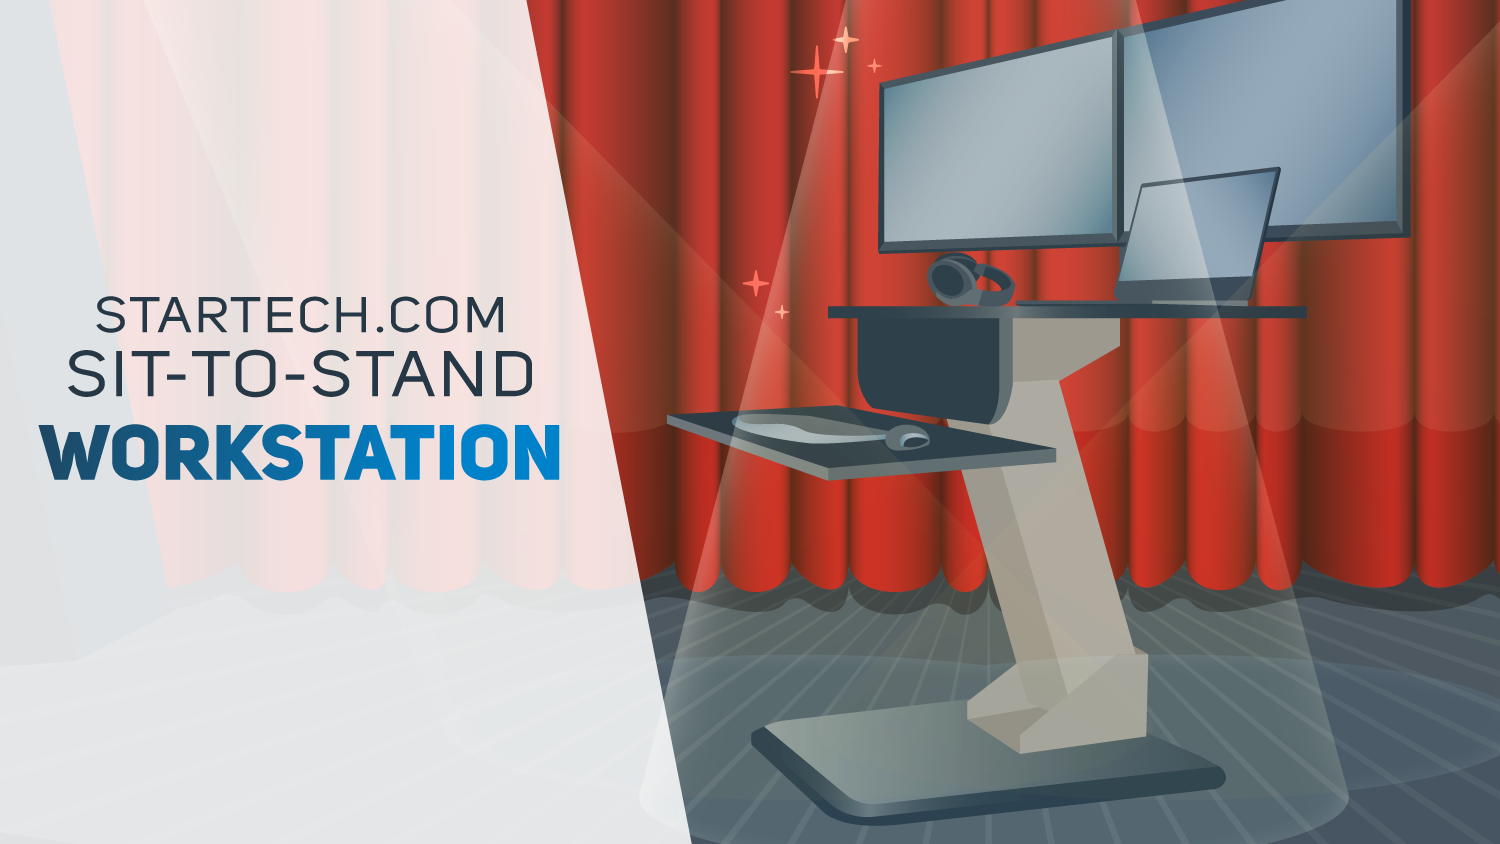 Ultimate Workstation Animation Illustrations | Startech, Spiceworks | Makemark